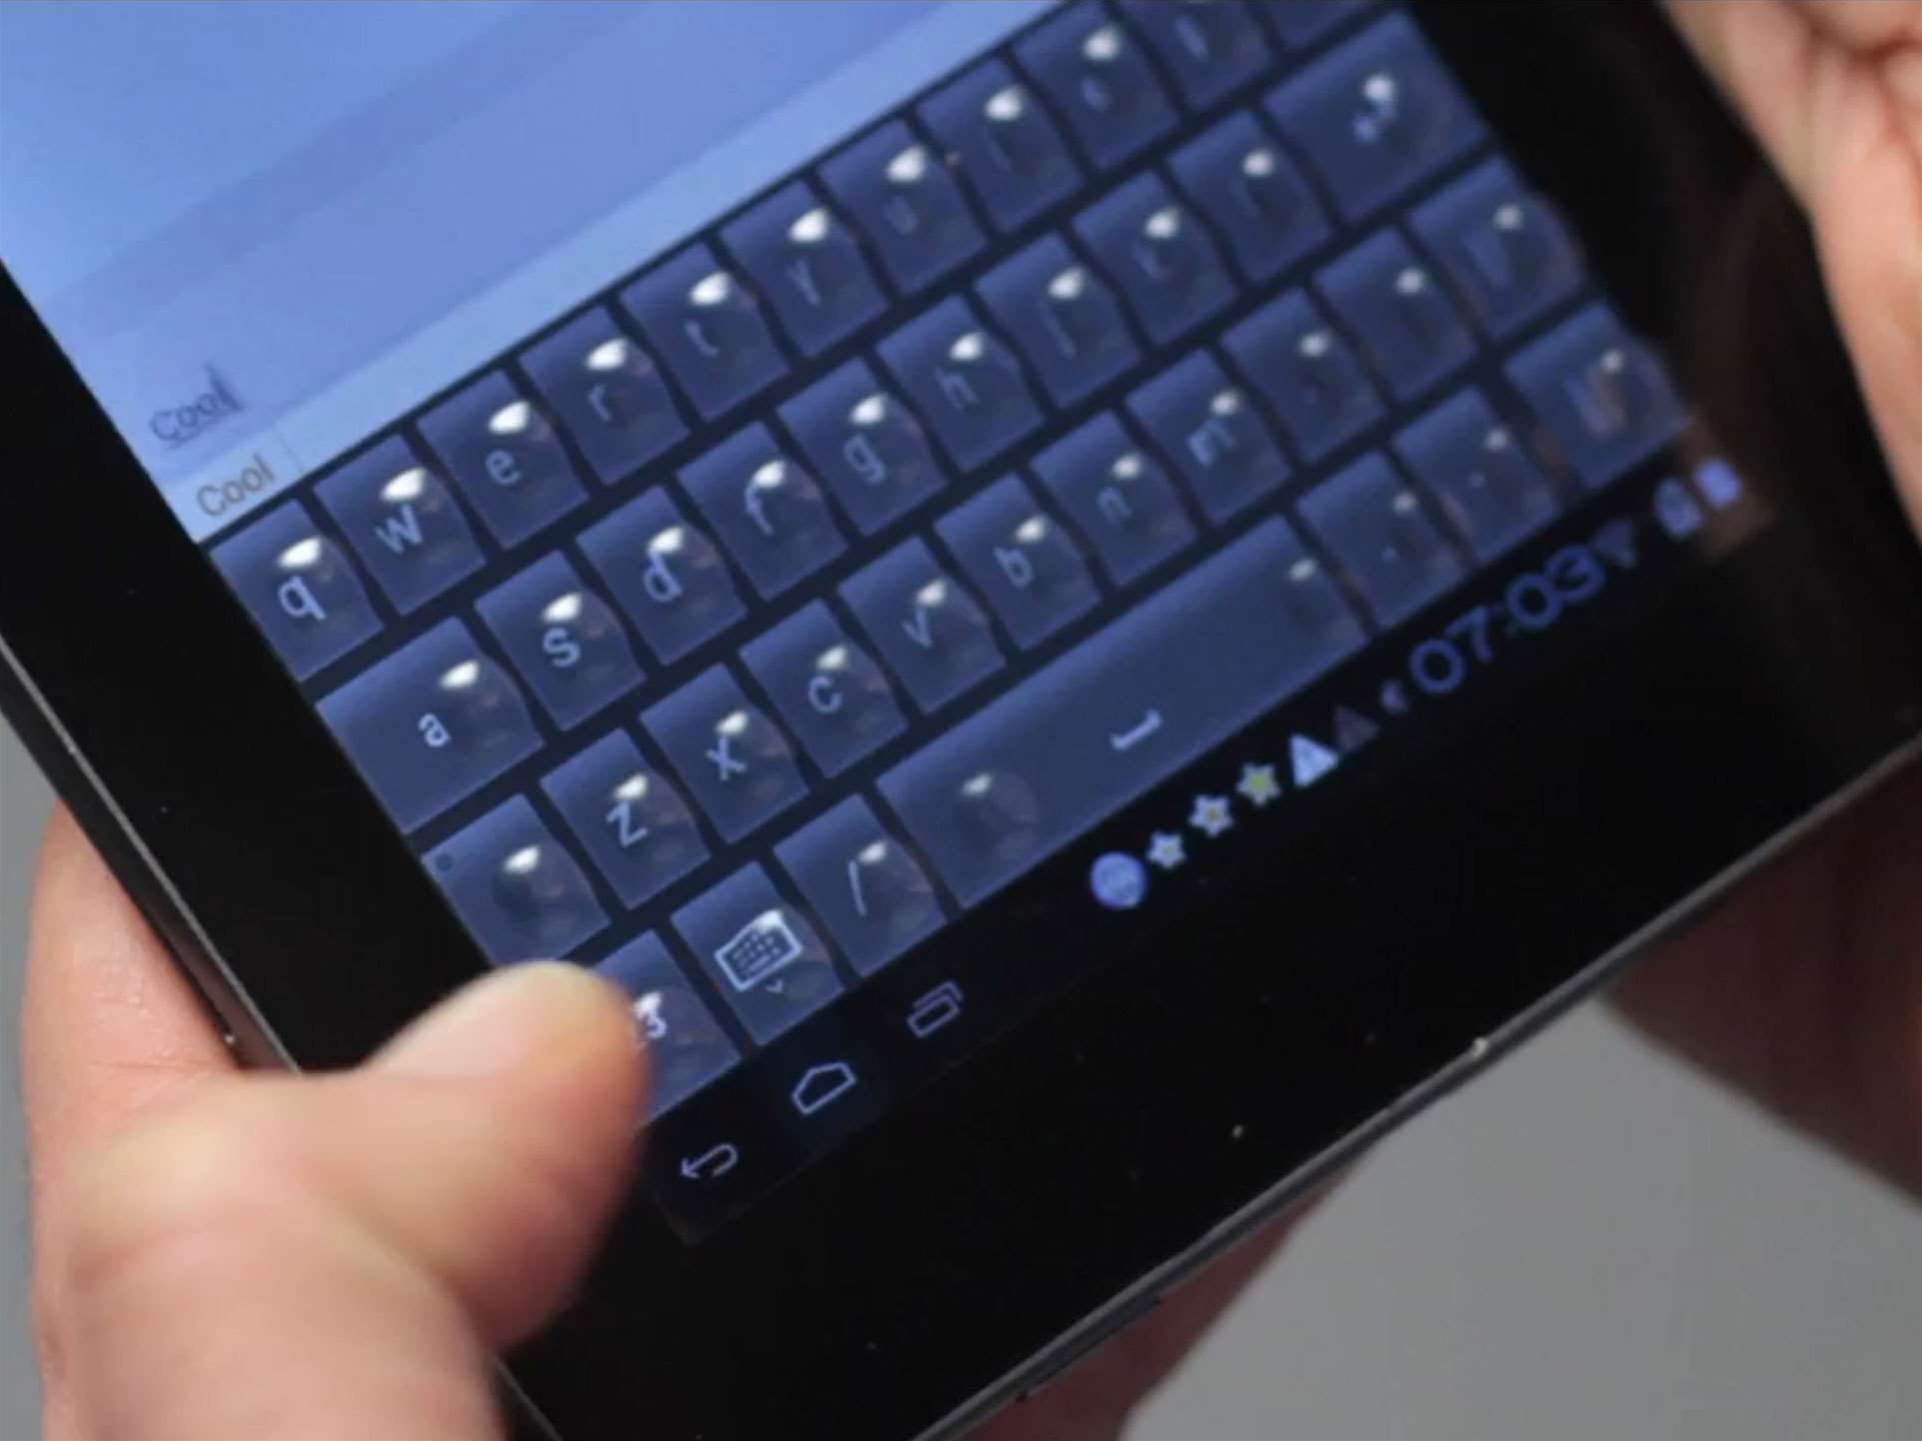 Video: Morphing touchscreen keyboard unveiled